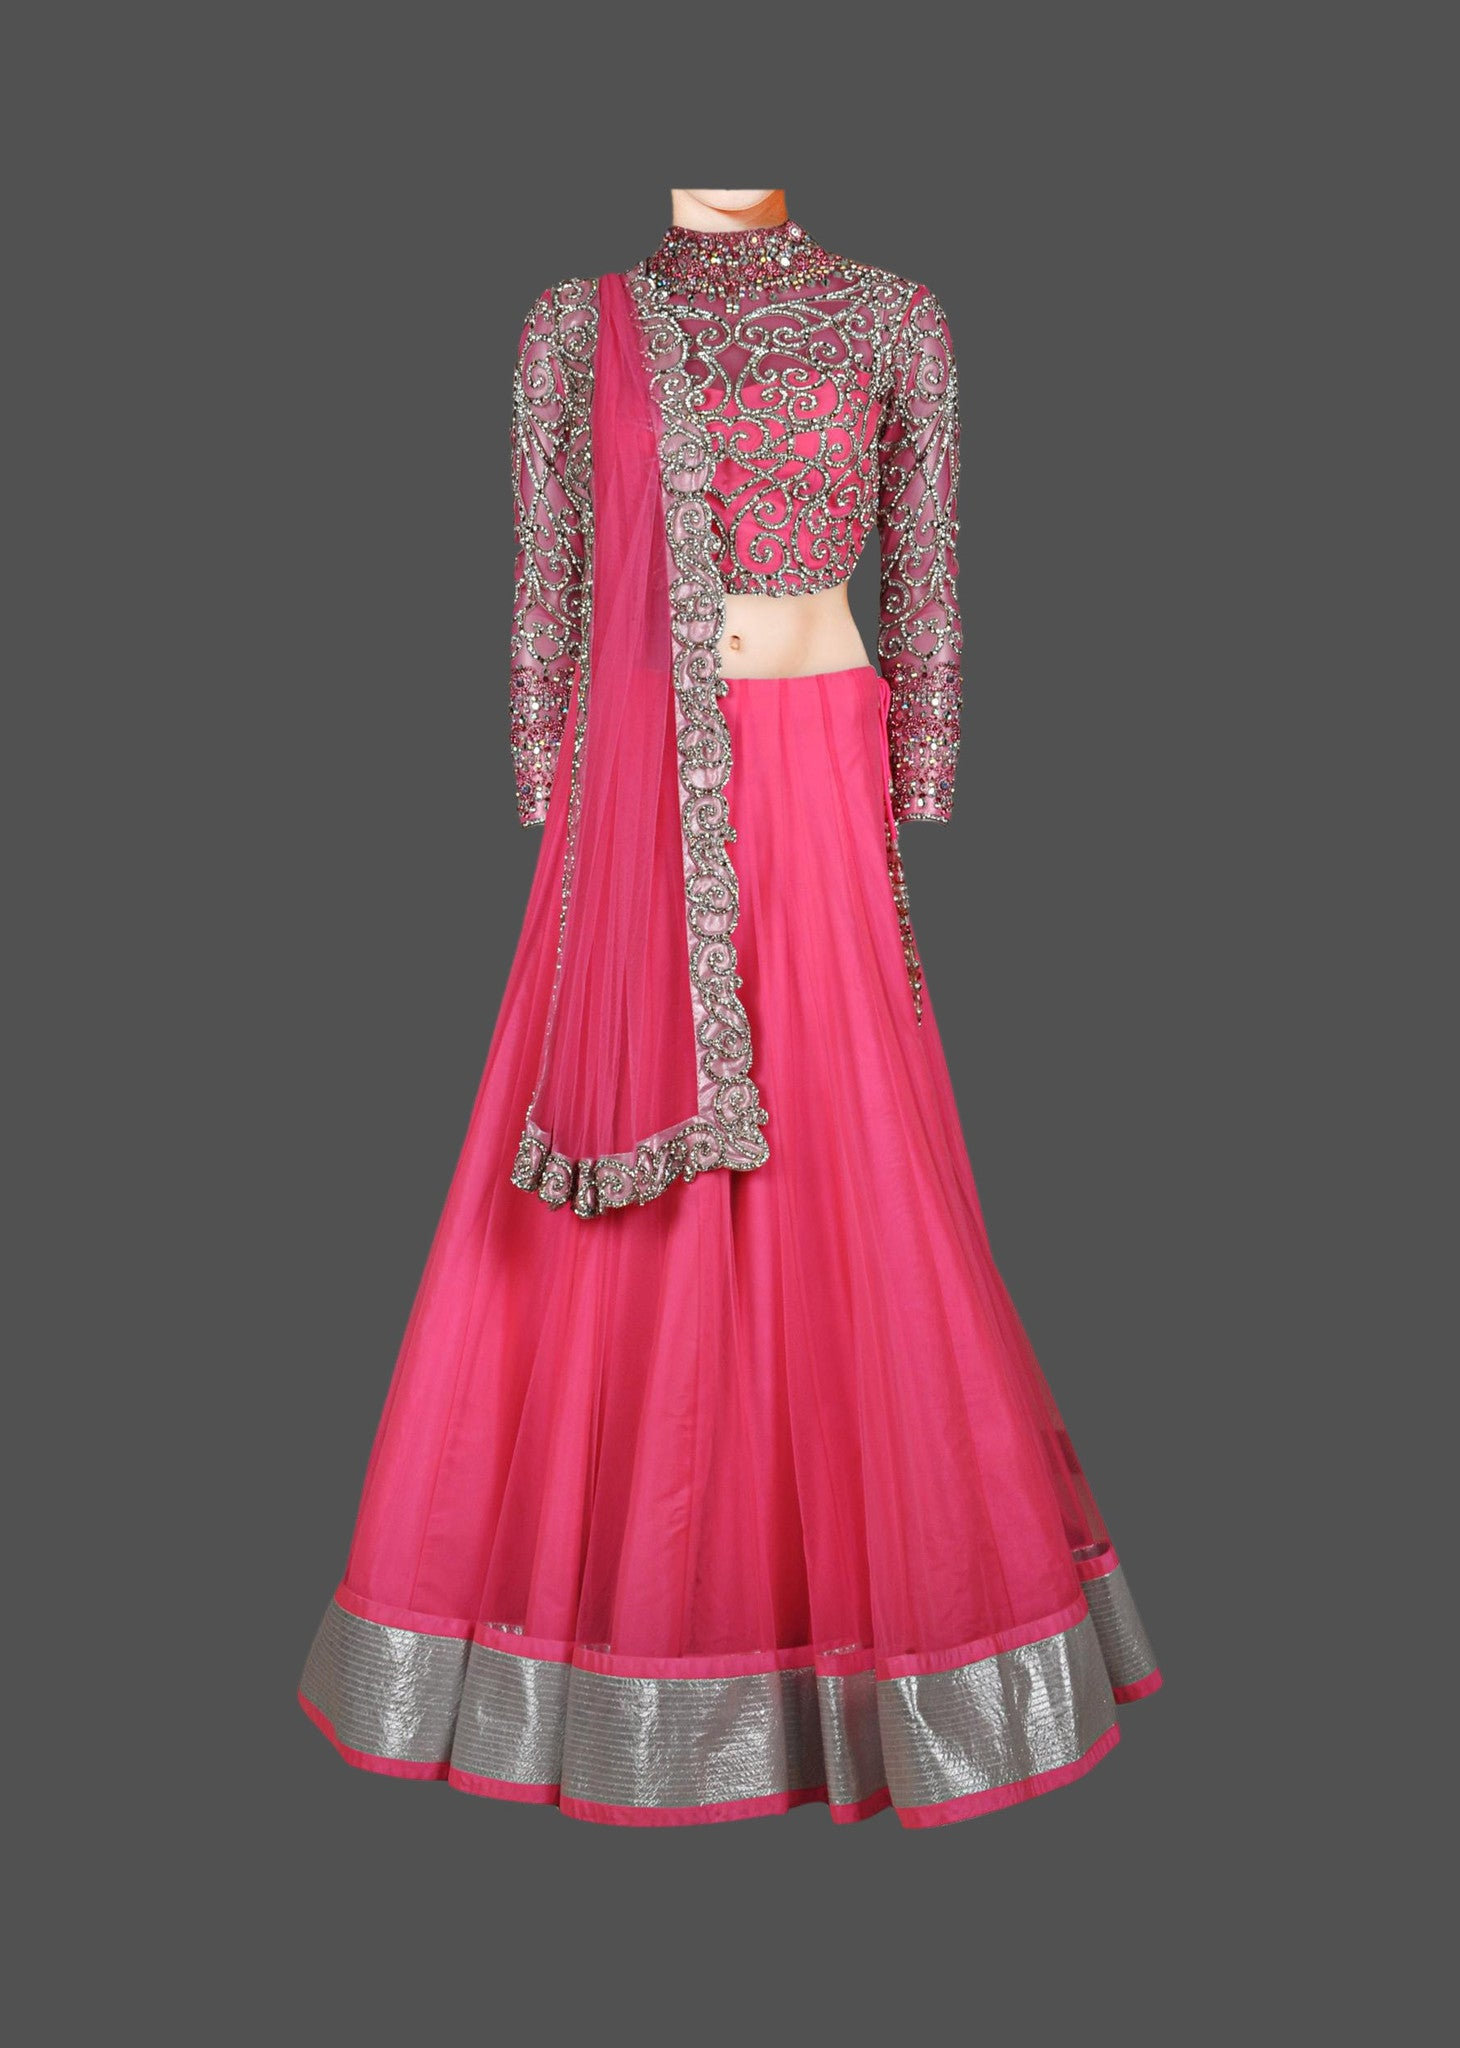 Pink color heavy embroidered lehenga choli